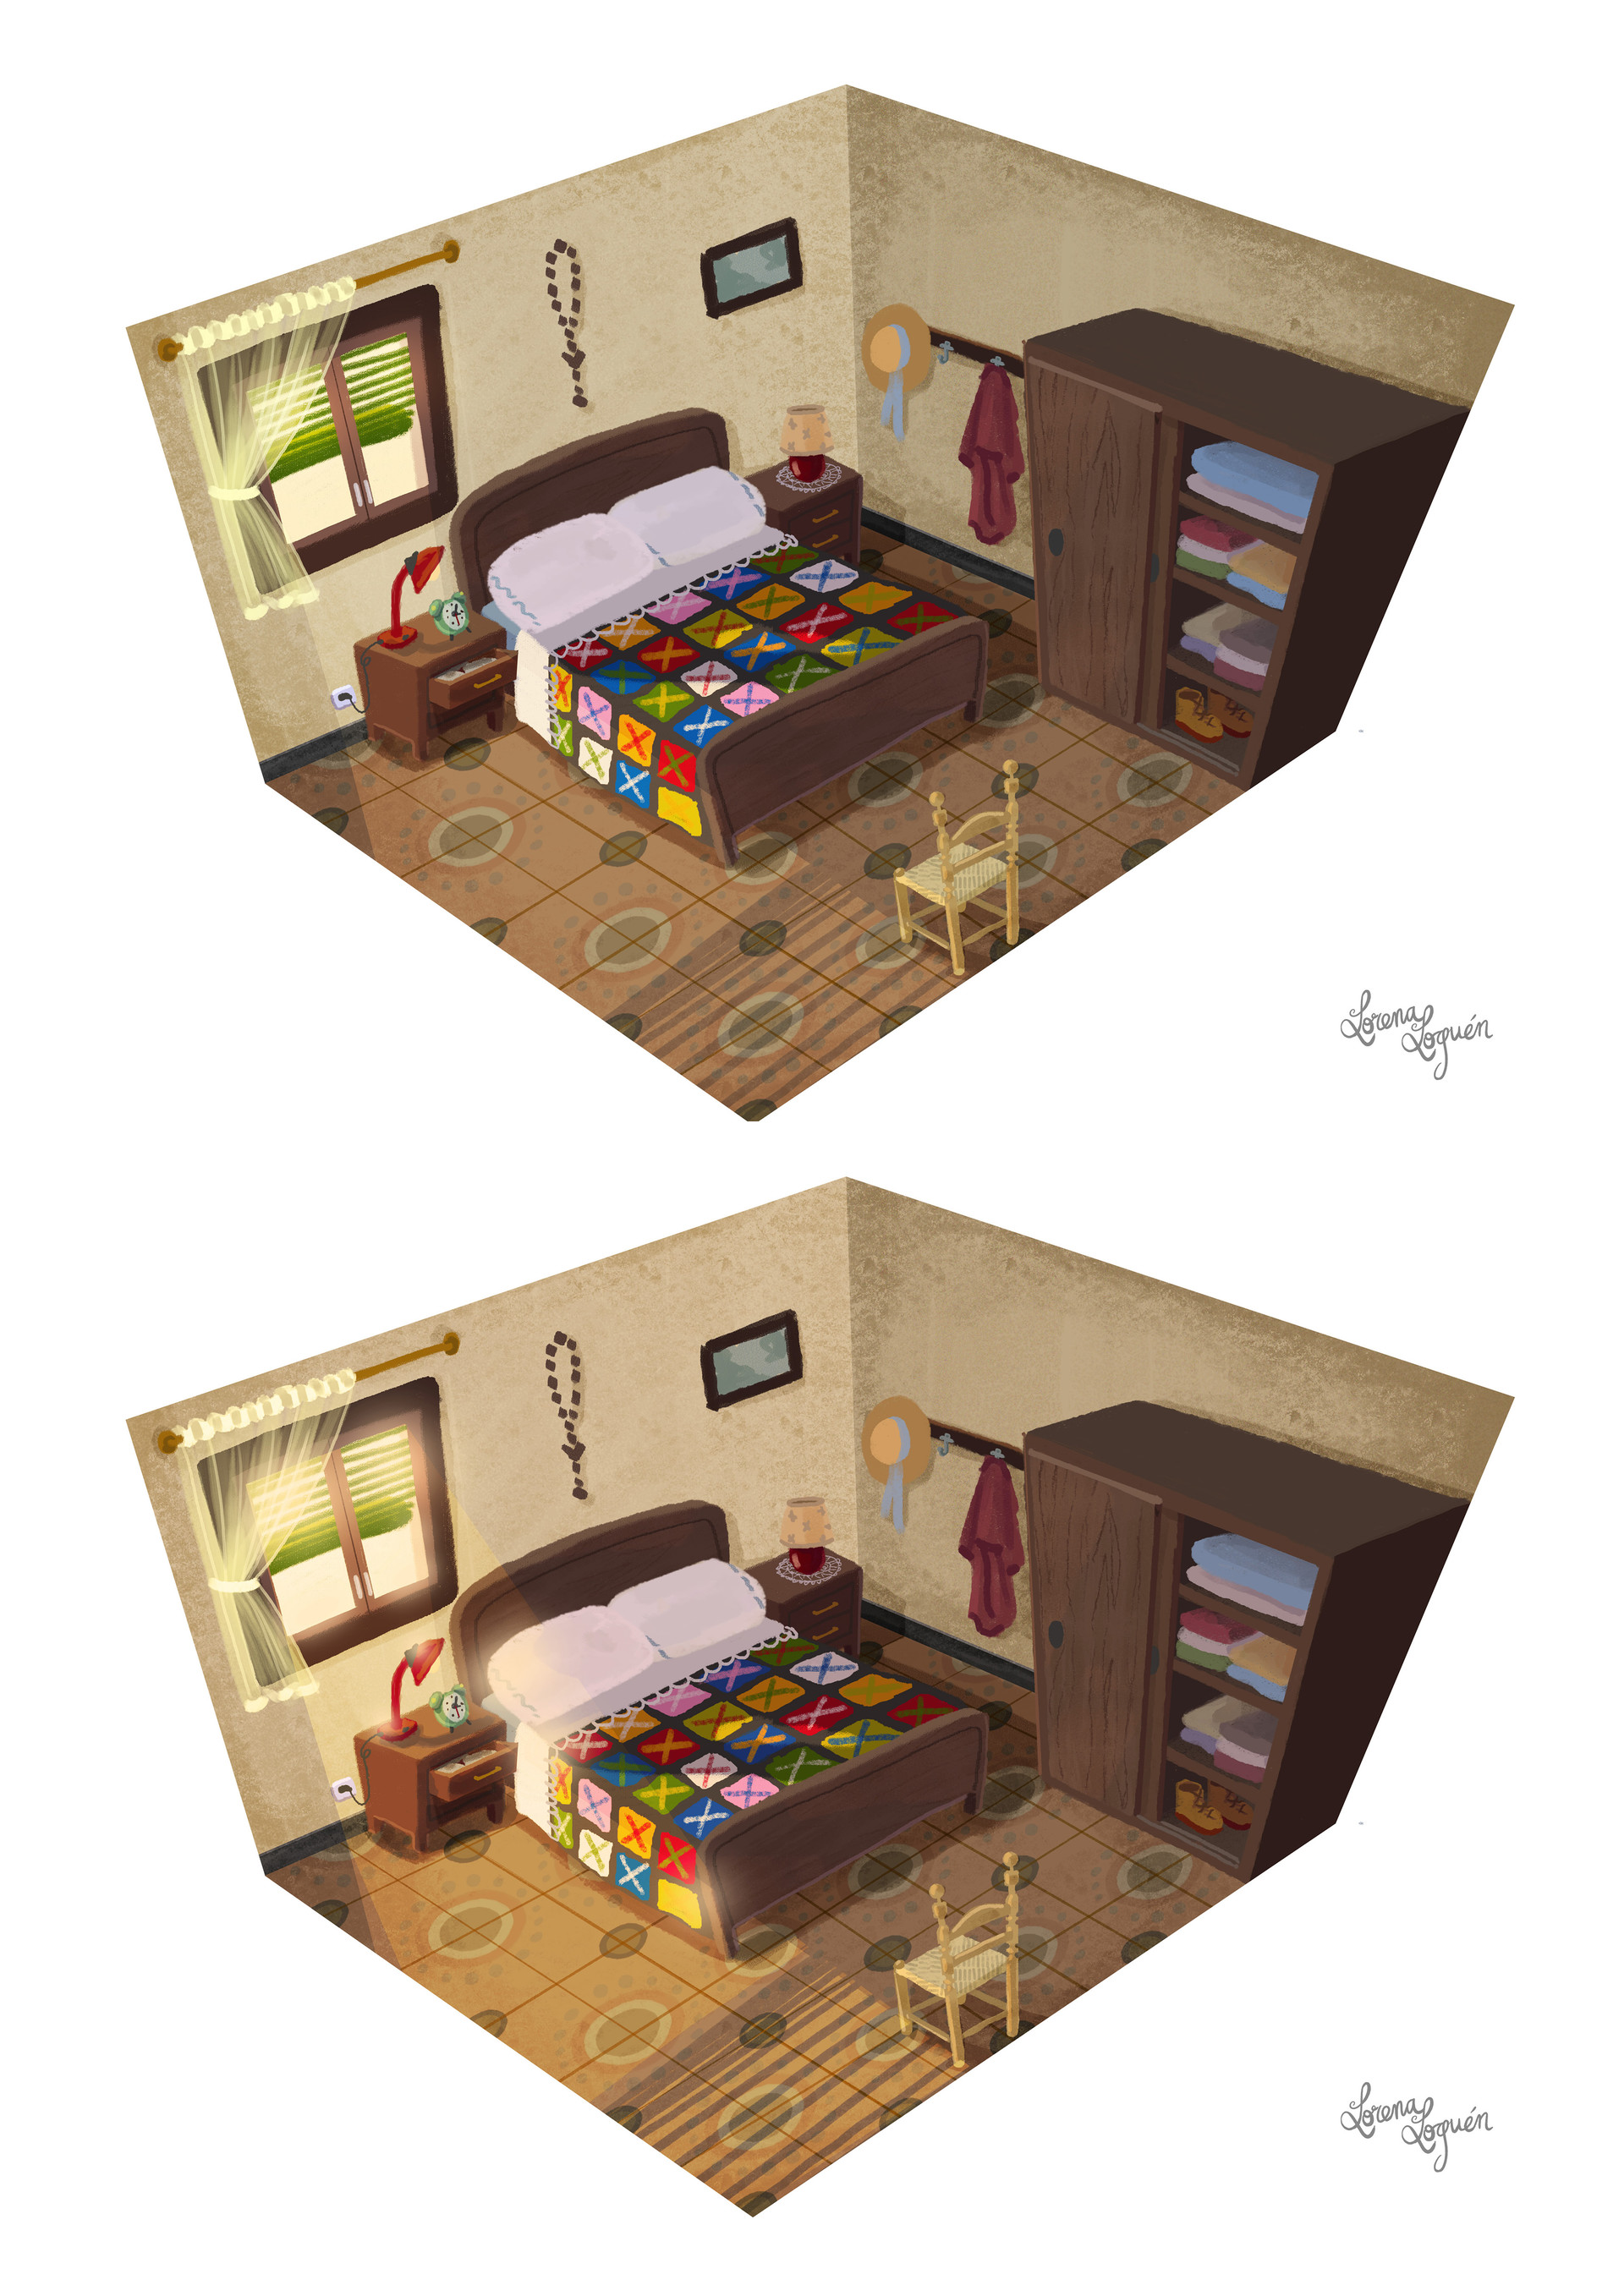 Lorena loguen bedroom concept art by lorena loguen steps 03